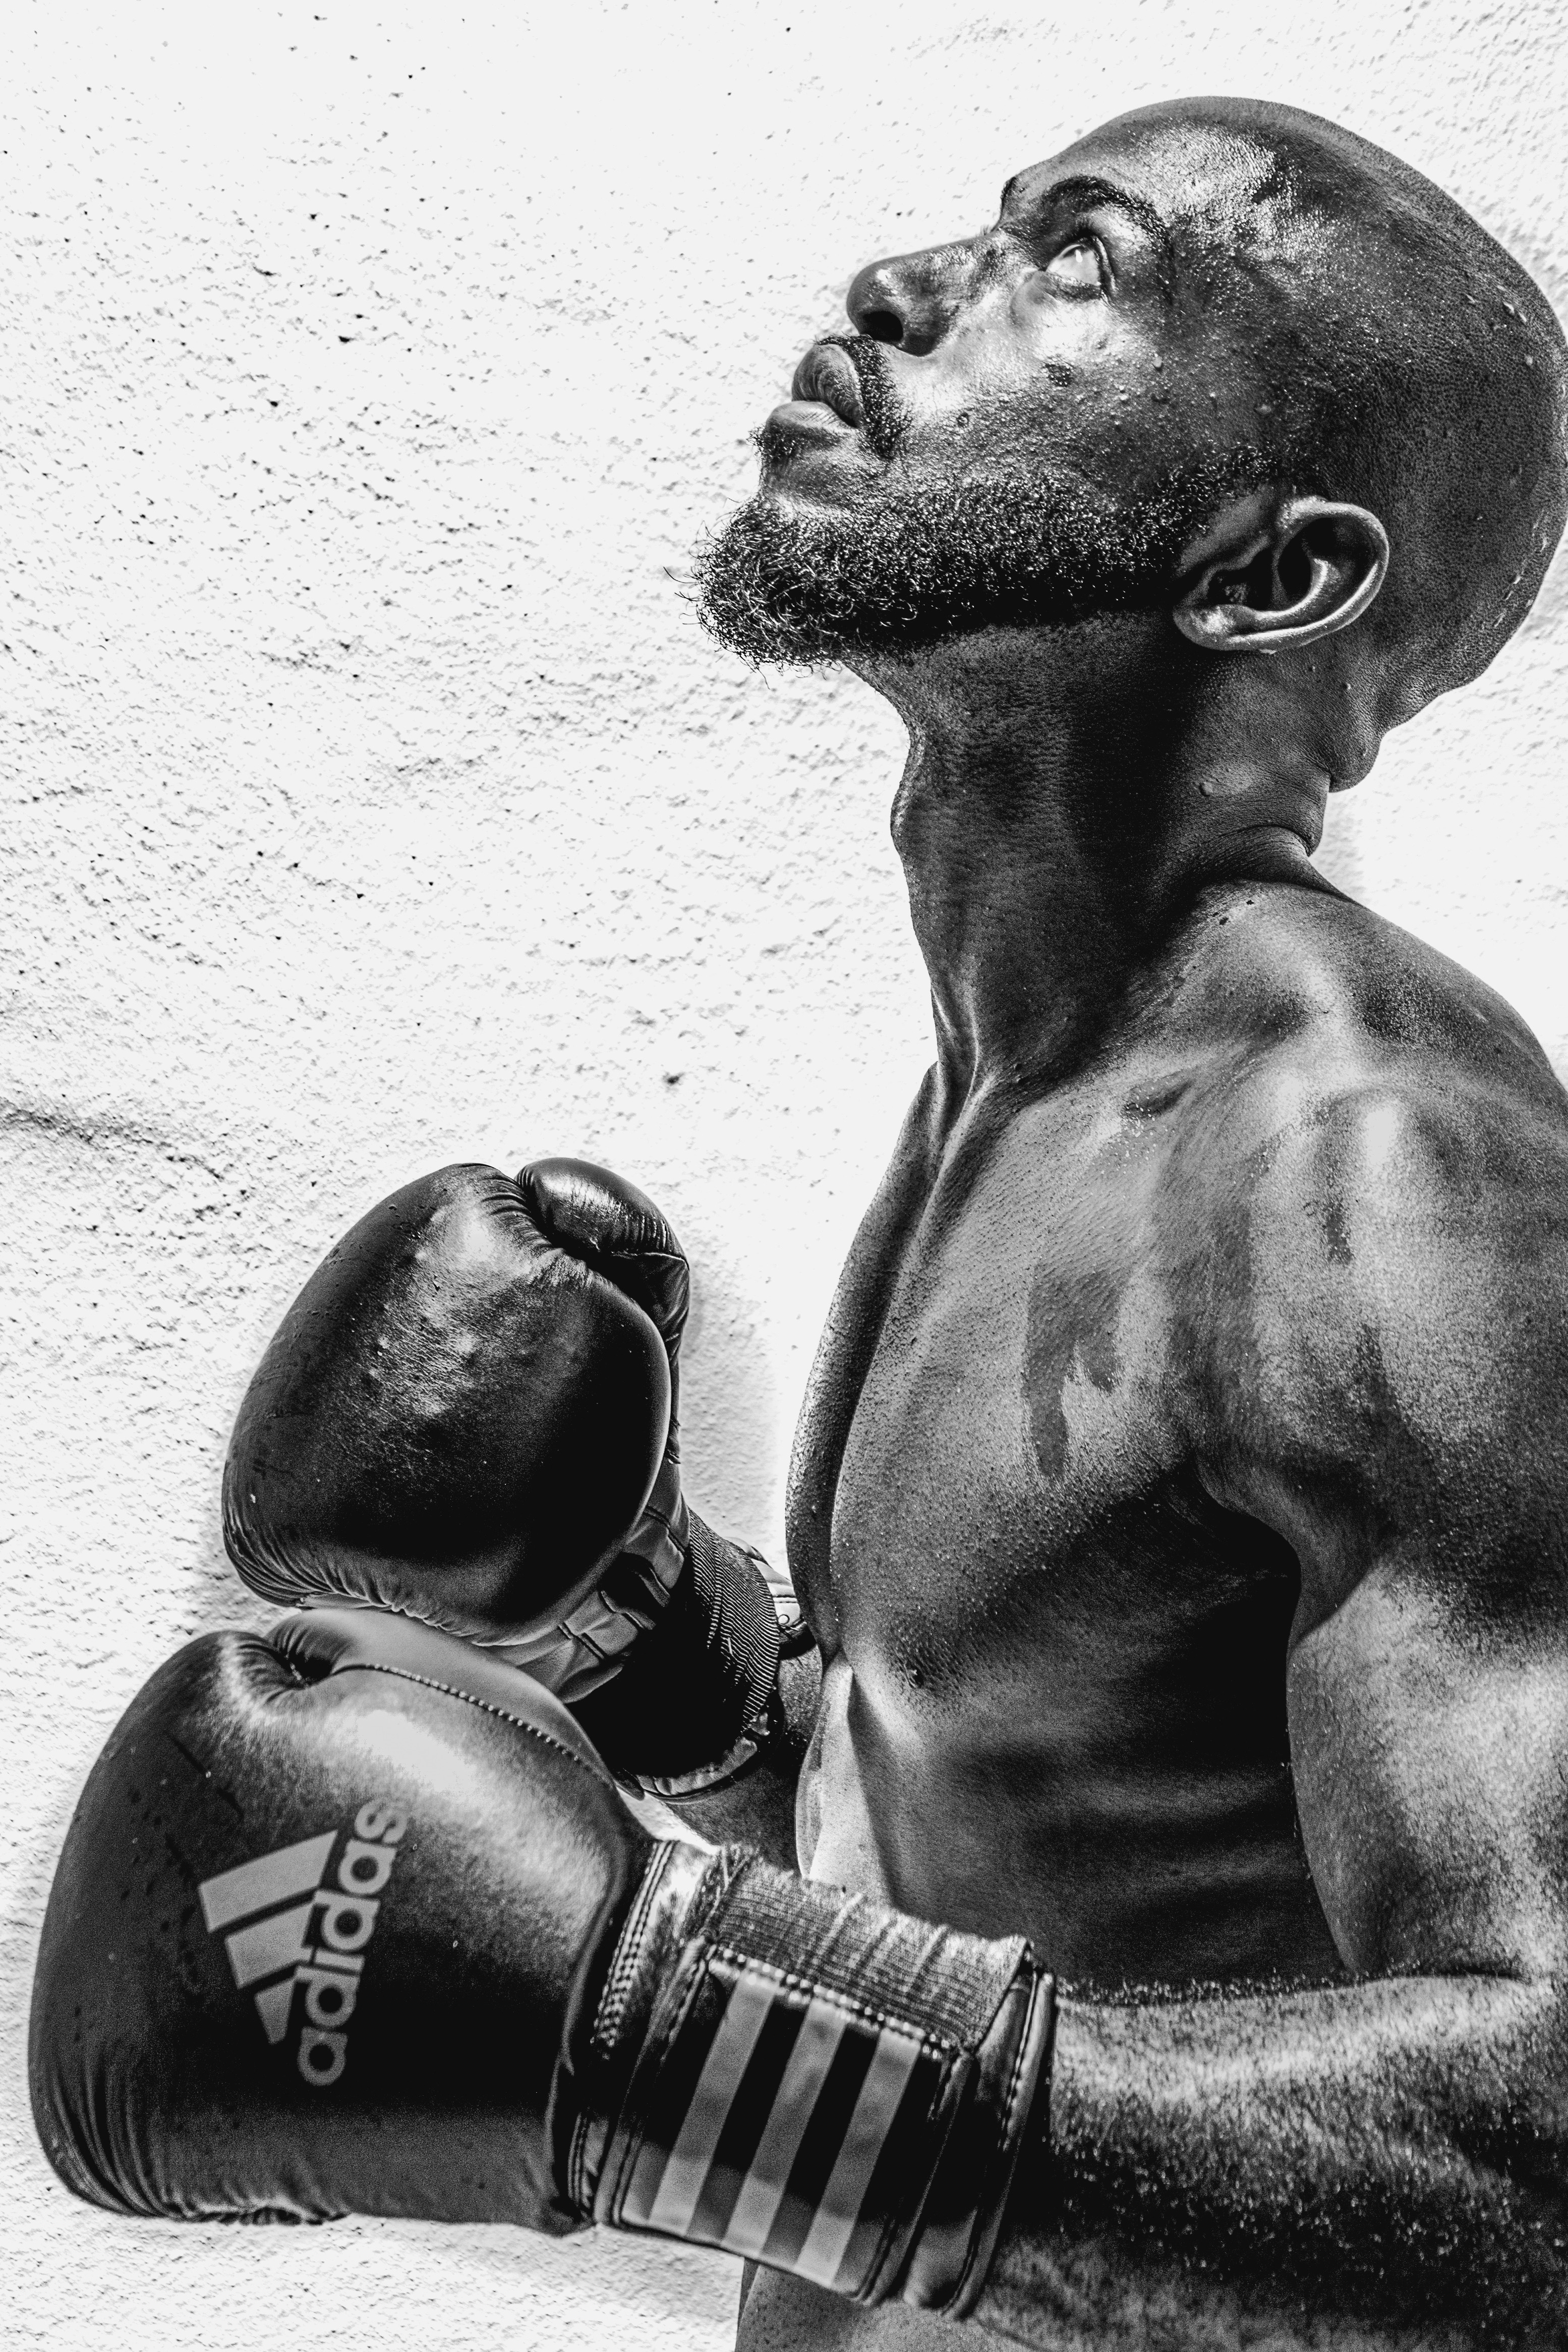 Black and white photo of a Black boxer whose athletic body is doused in sweat, gloved boxer mitts in almost a prayer position, looking up towards the sky as if summoning, thinking, or communicating with a higher belief right after a training or competition.